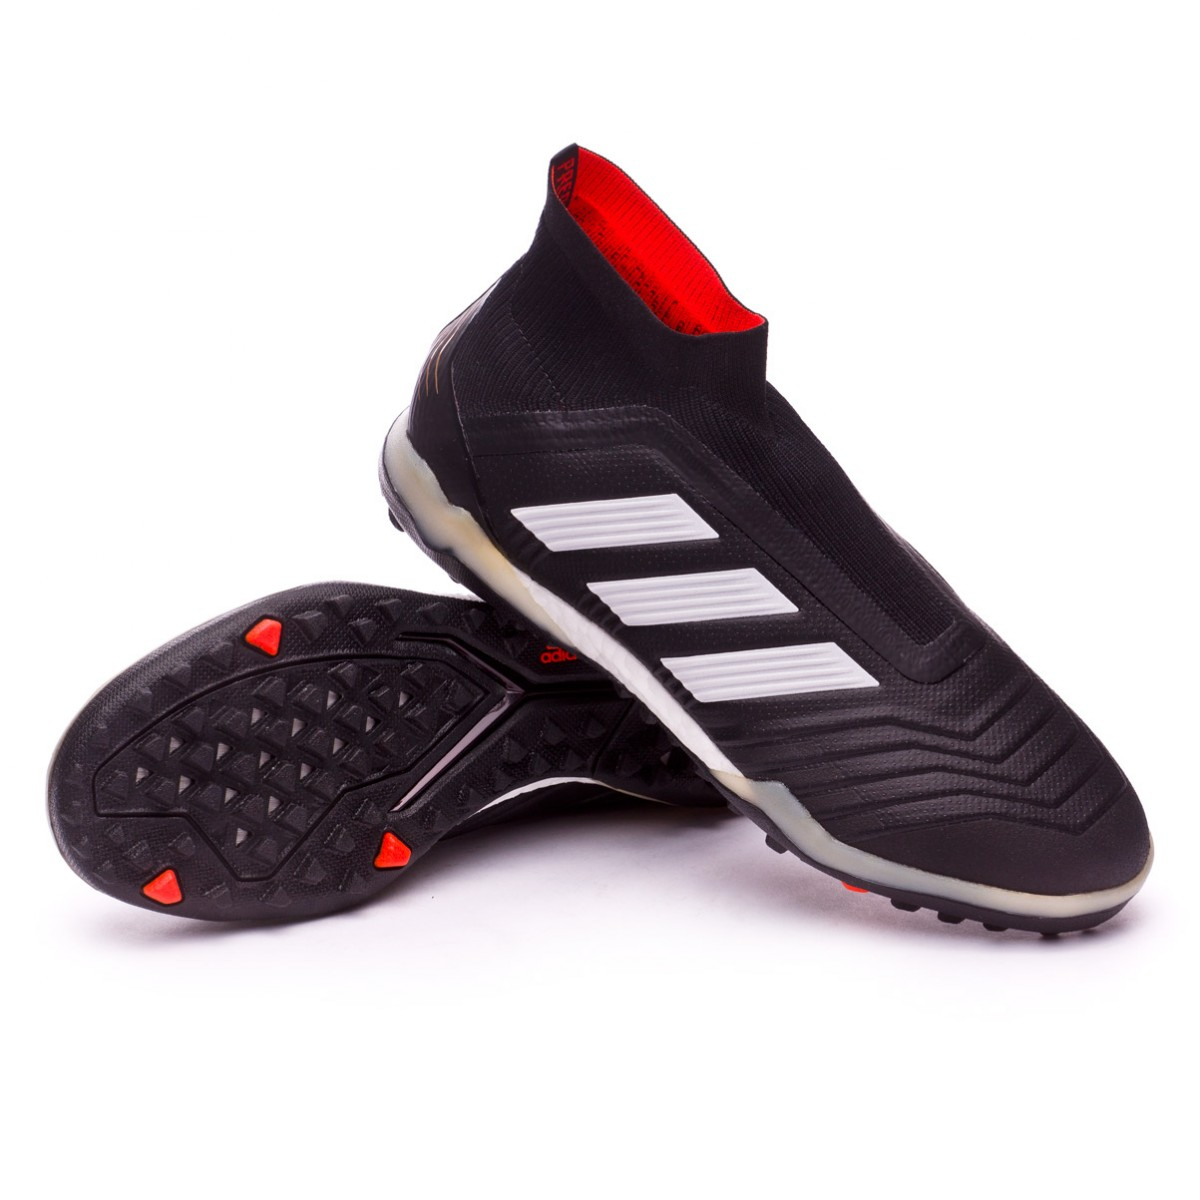 Football Boot adidas Predator Tango 18+ Turf Core black-Whit